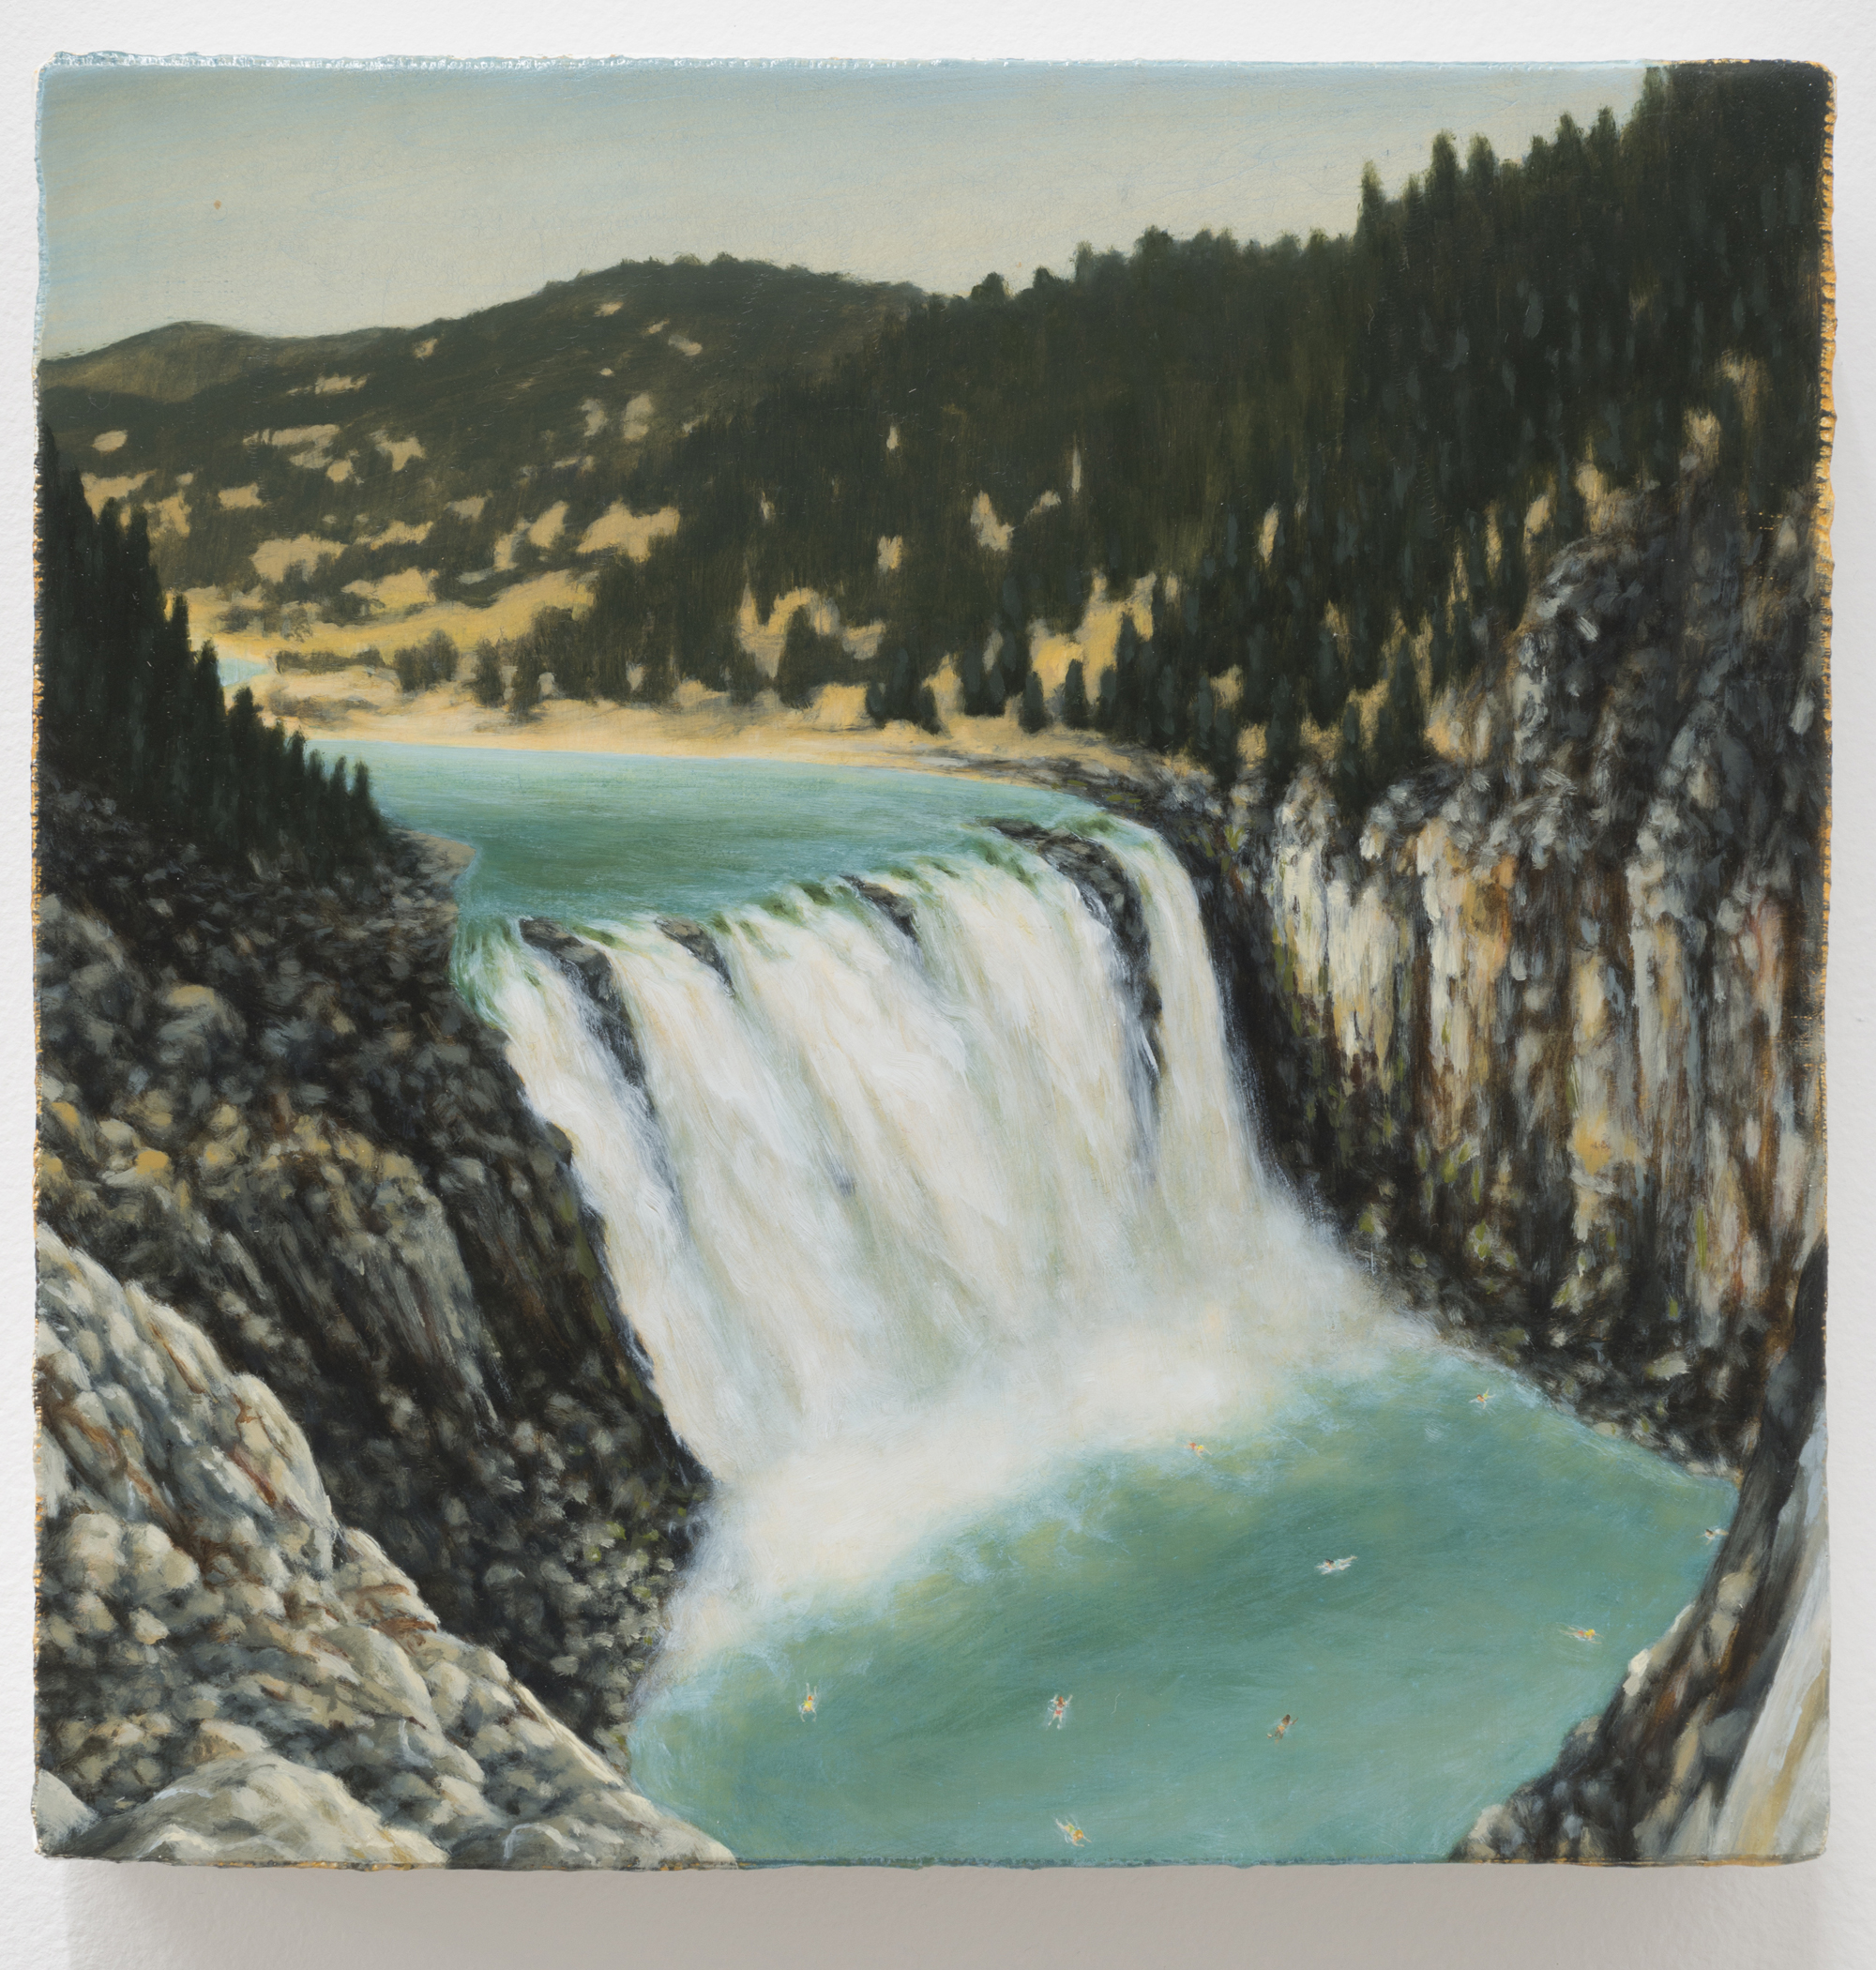 Summers At Waterfall 2 2014, oil on gesso on canvas, stretched over panel